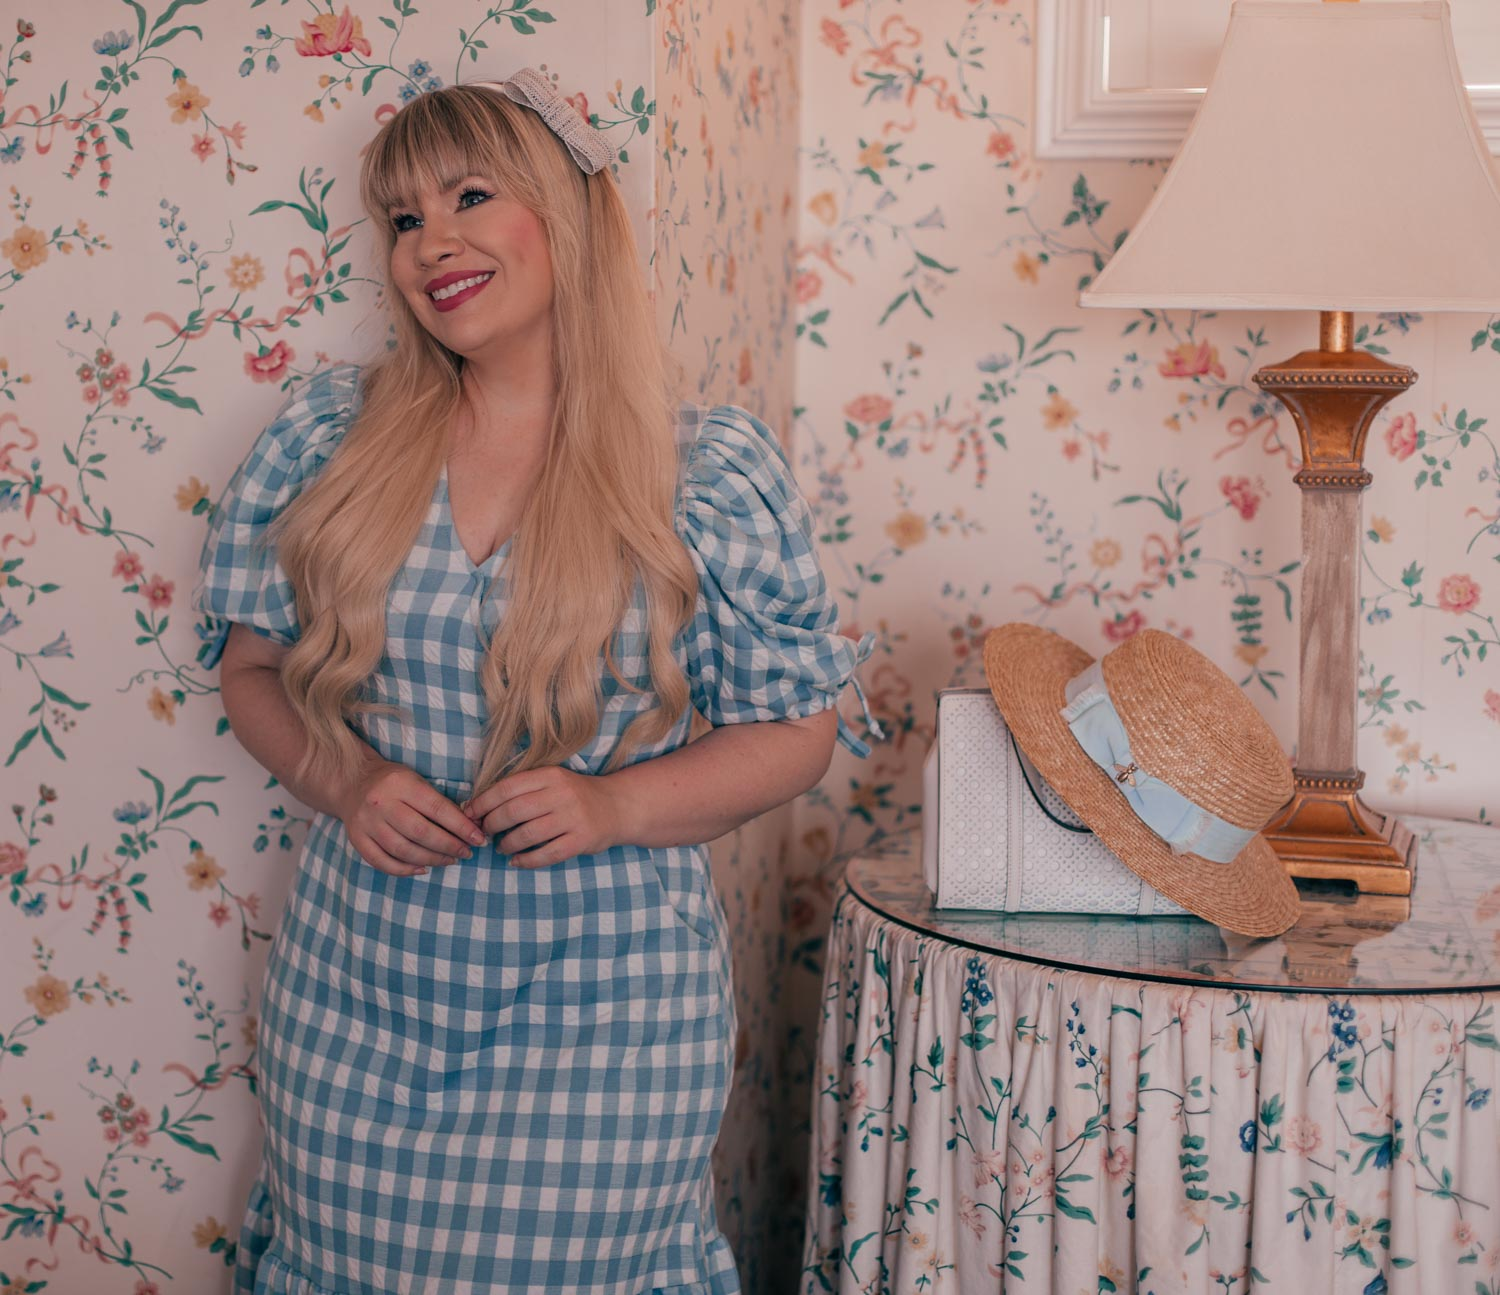 Feminine fashion blogger Elizabeth Hugen of Lizzie in Lace shares 3 Feminine Summer Hair Accessories to Wear Now including this gorgeous bow headband! it looks perfect with this blue gingham summer dress